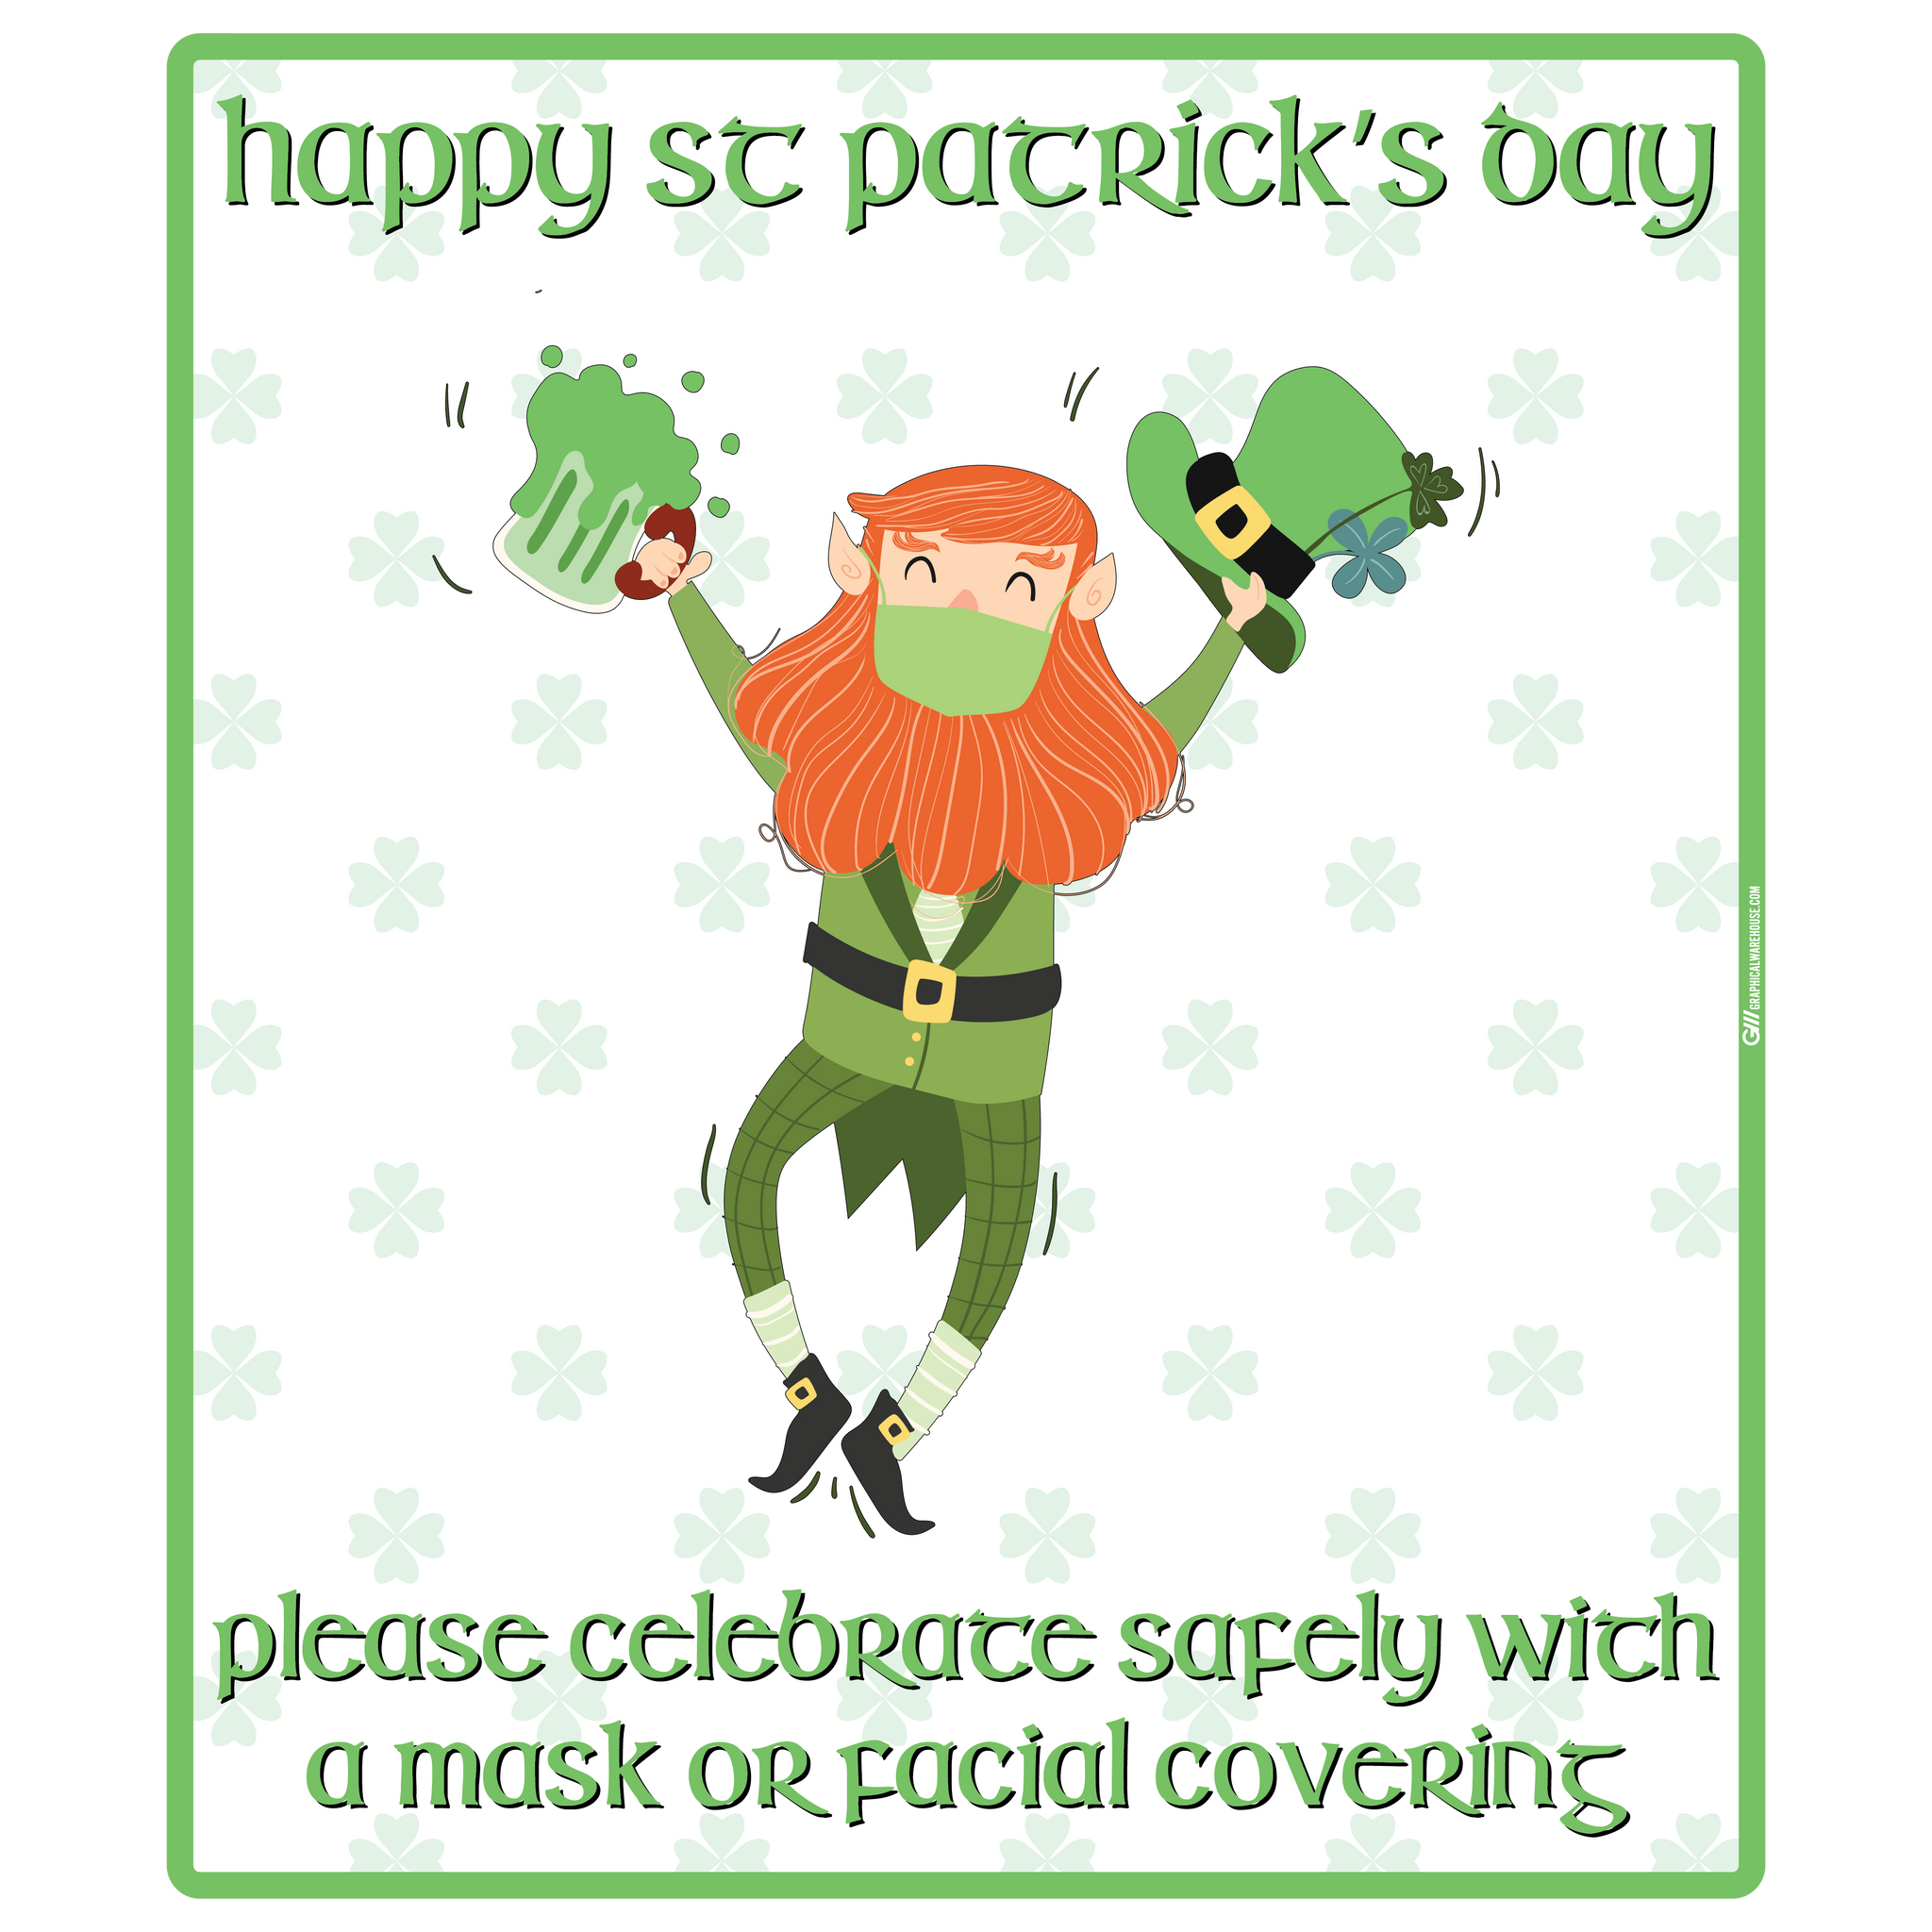 """St. Patrick's Day, Wear a Mask"" Adhesive Durable Vinyl Decal- Various Sizes Available"